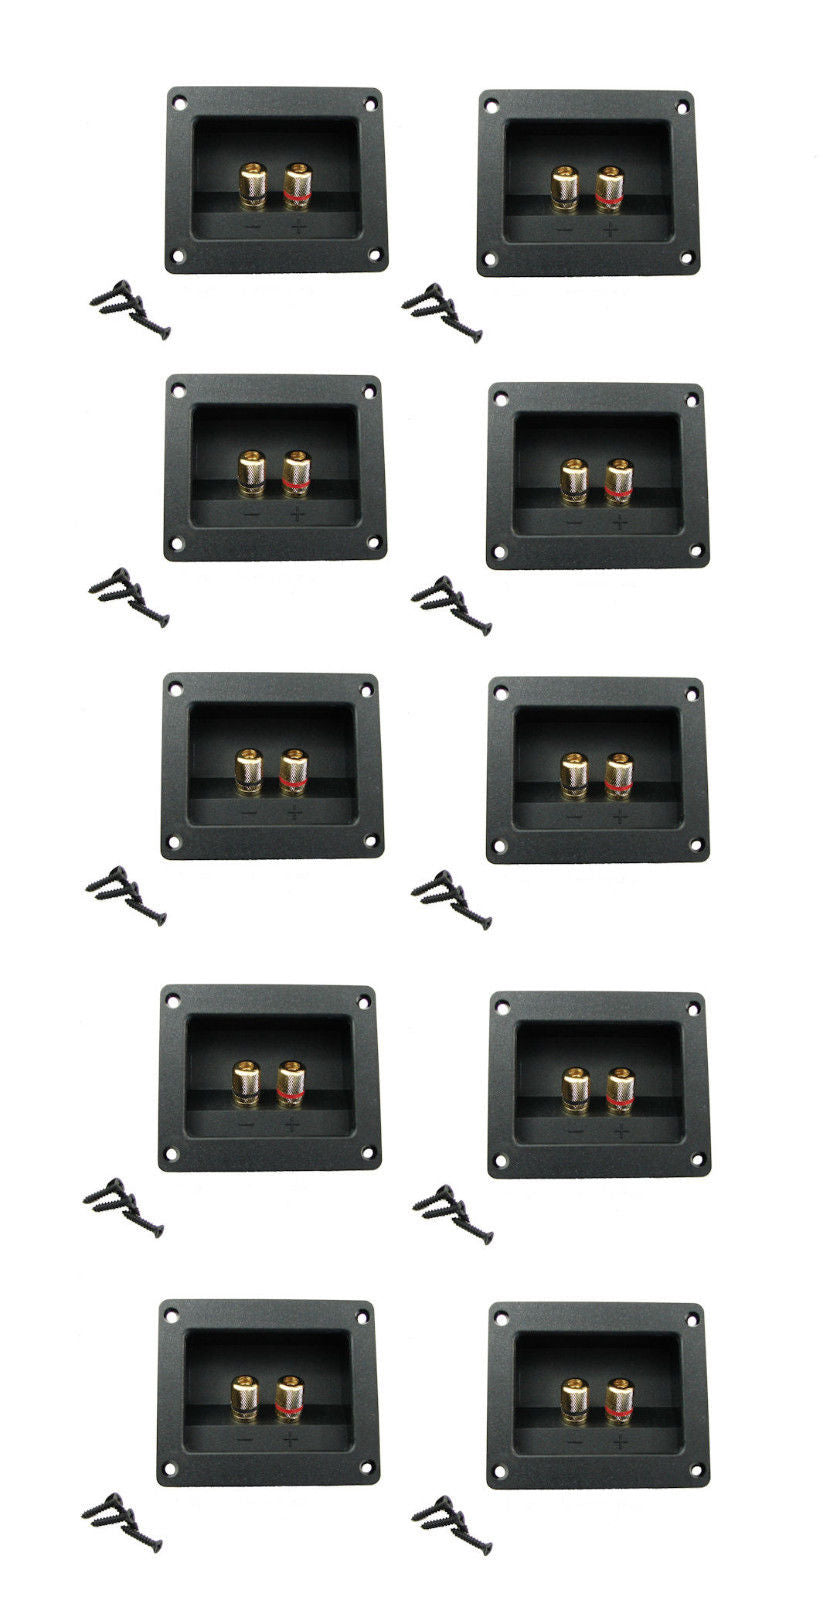 10 Pack Goldwood Sound RGT-3000 Gold Plated Speaker Terminal W/ Gasket